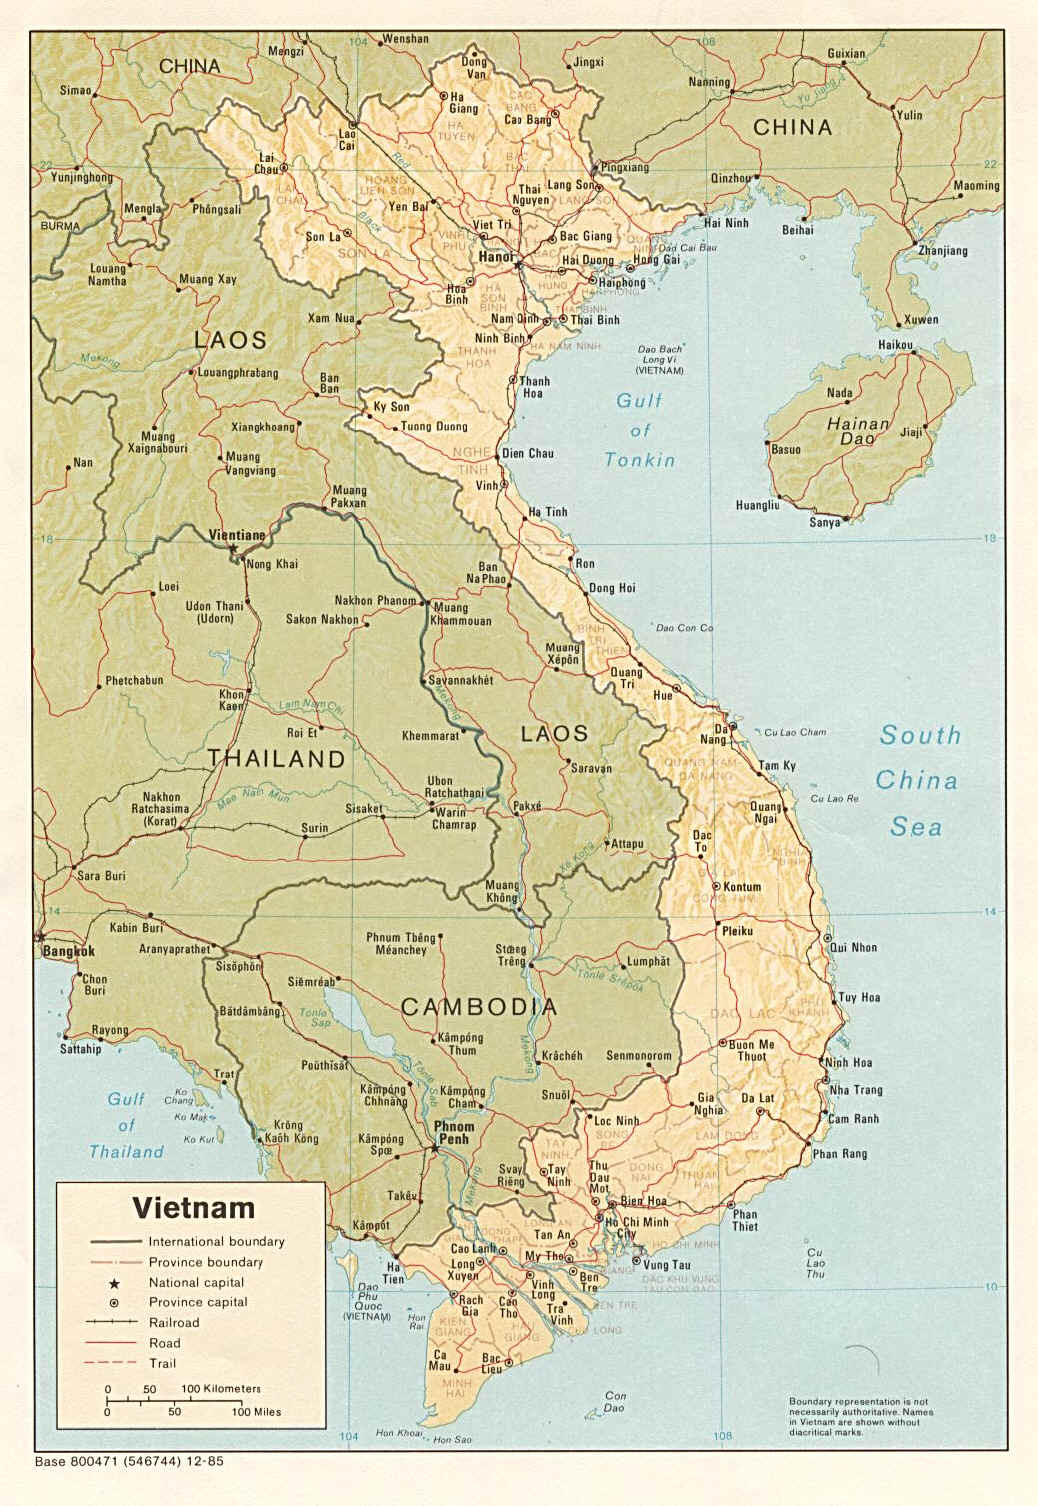 Viet nam and the australian military click to enlarge gumiabroncs Choice Image